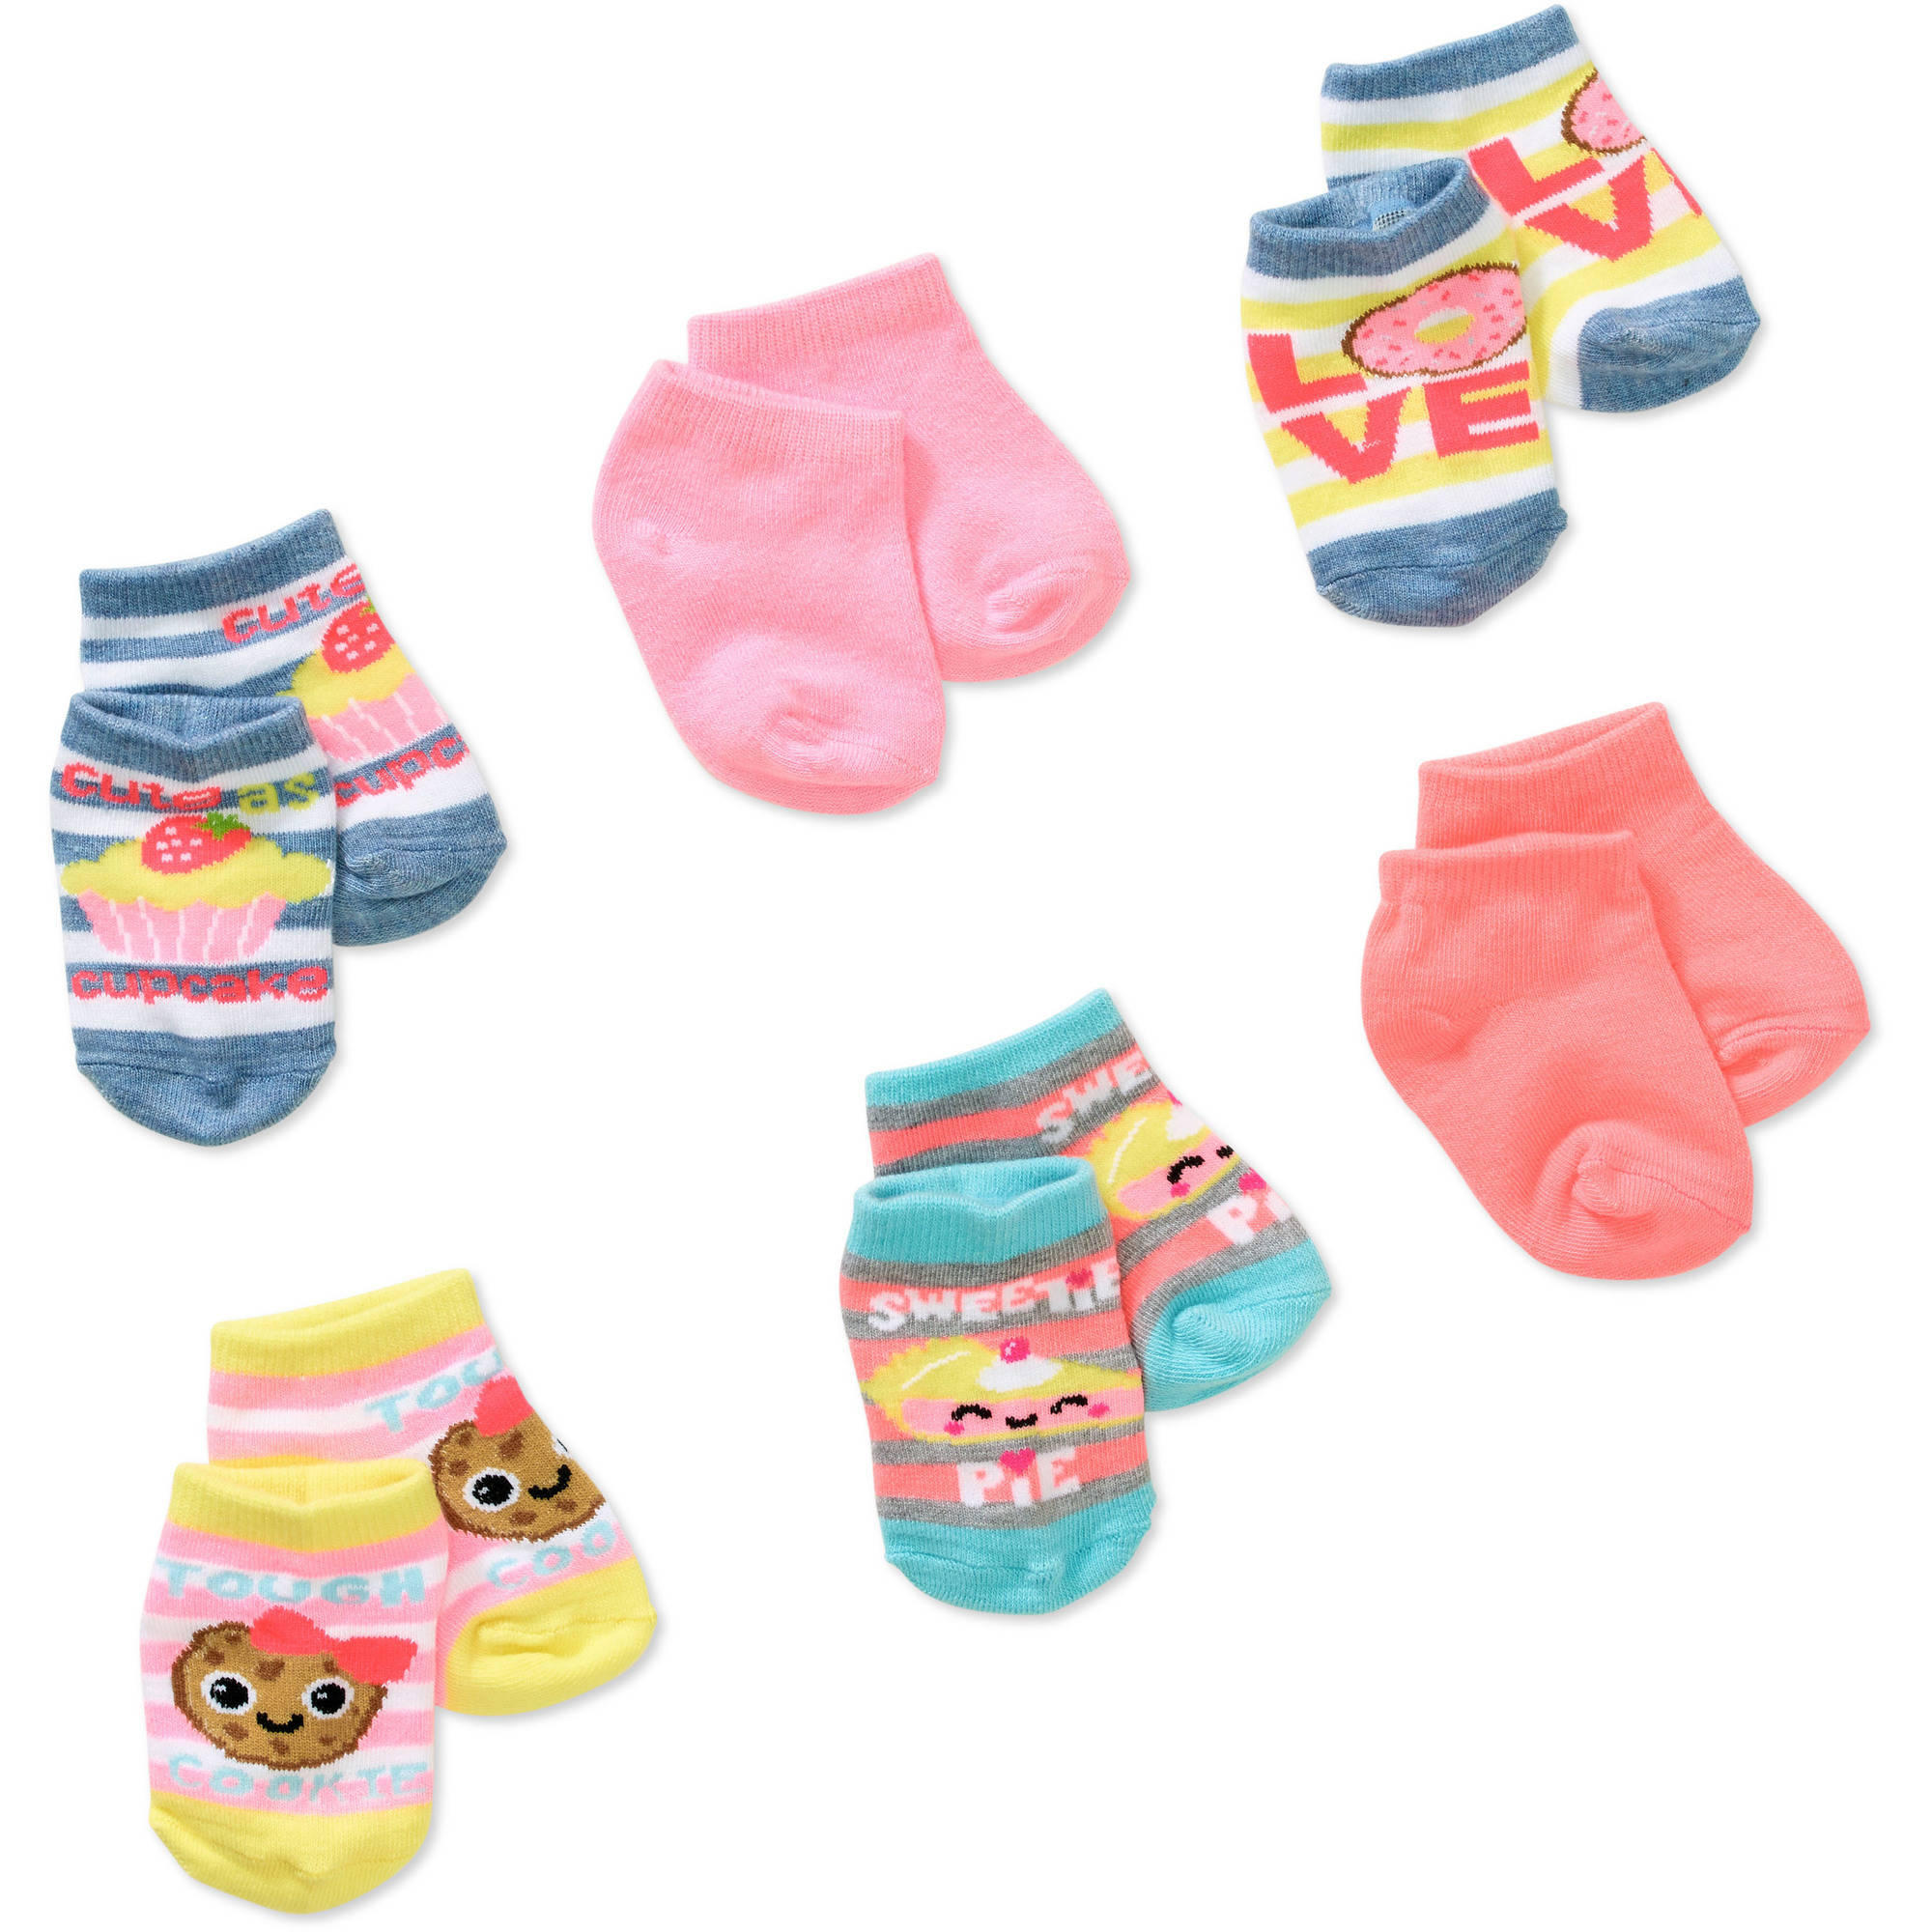 Garanimals Newborn to Toddler Baby Girls' Shorty Cupcake Print Socks, 6-Pack